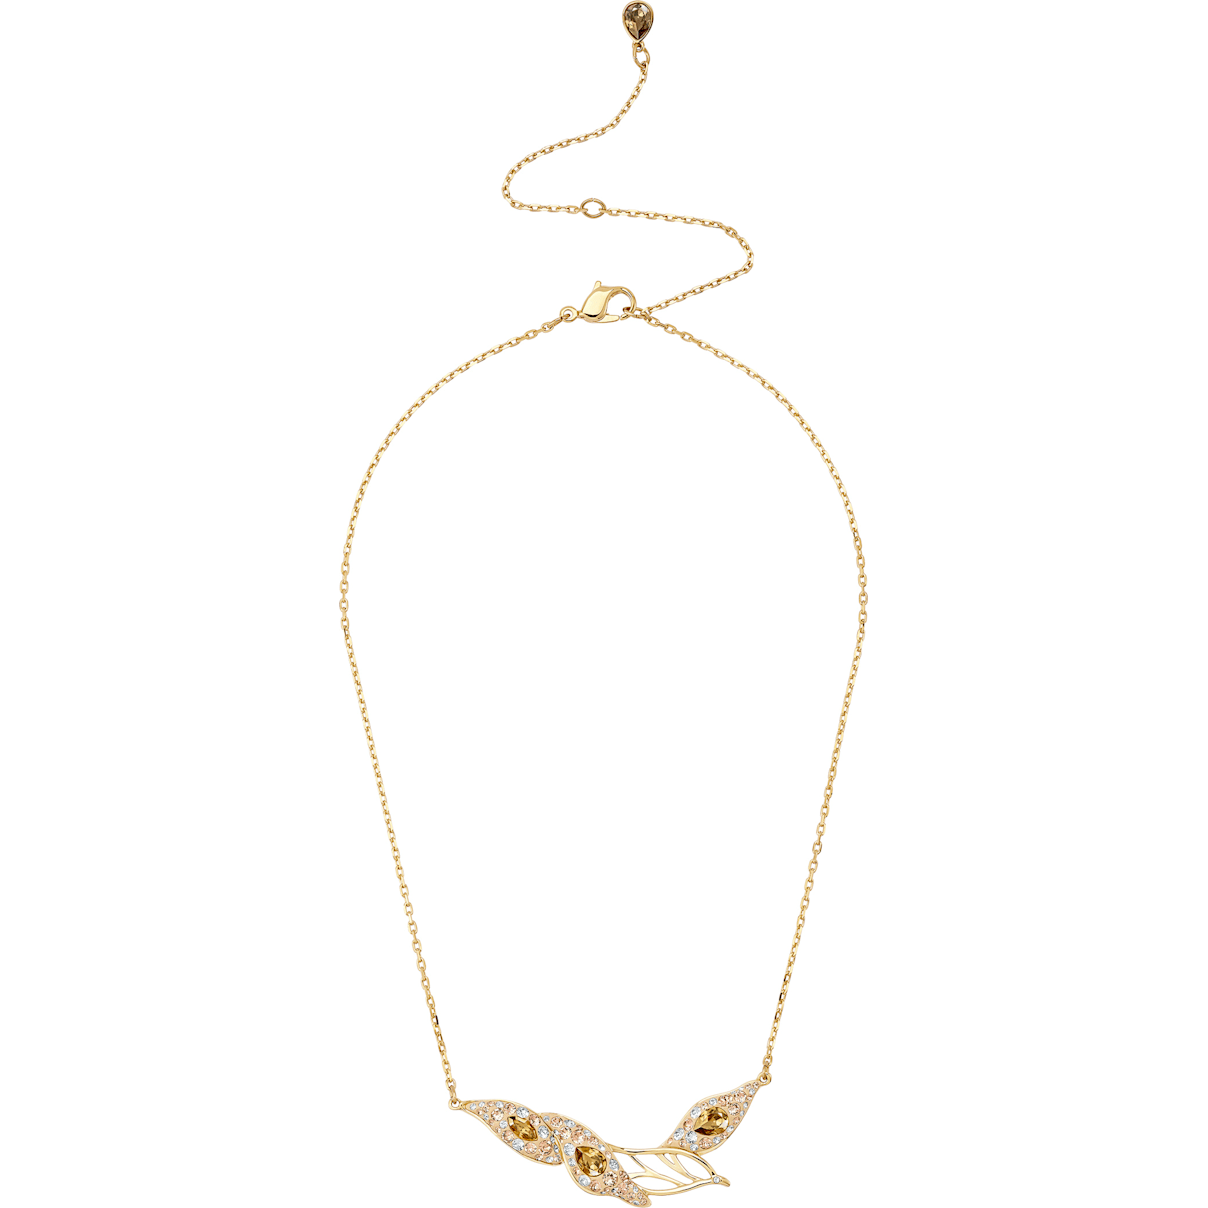 Swarovski Graceful Bloom Necklace, Brown, Gold-tone plated